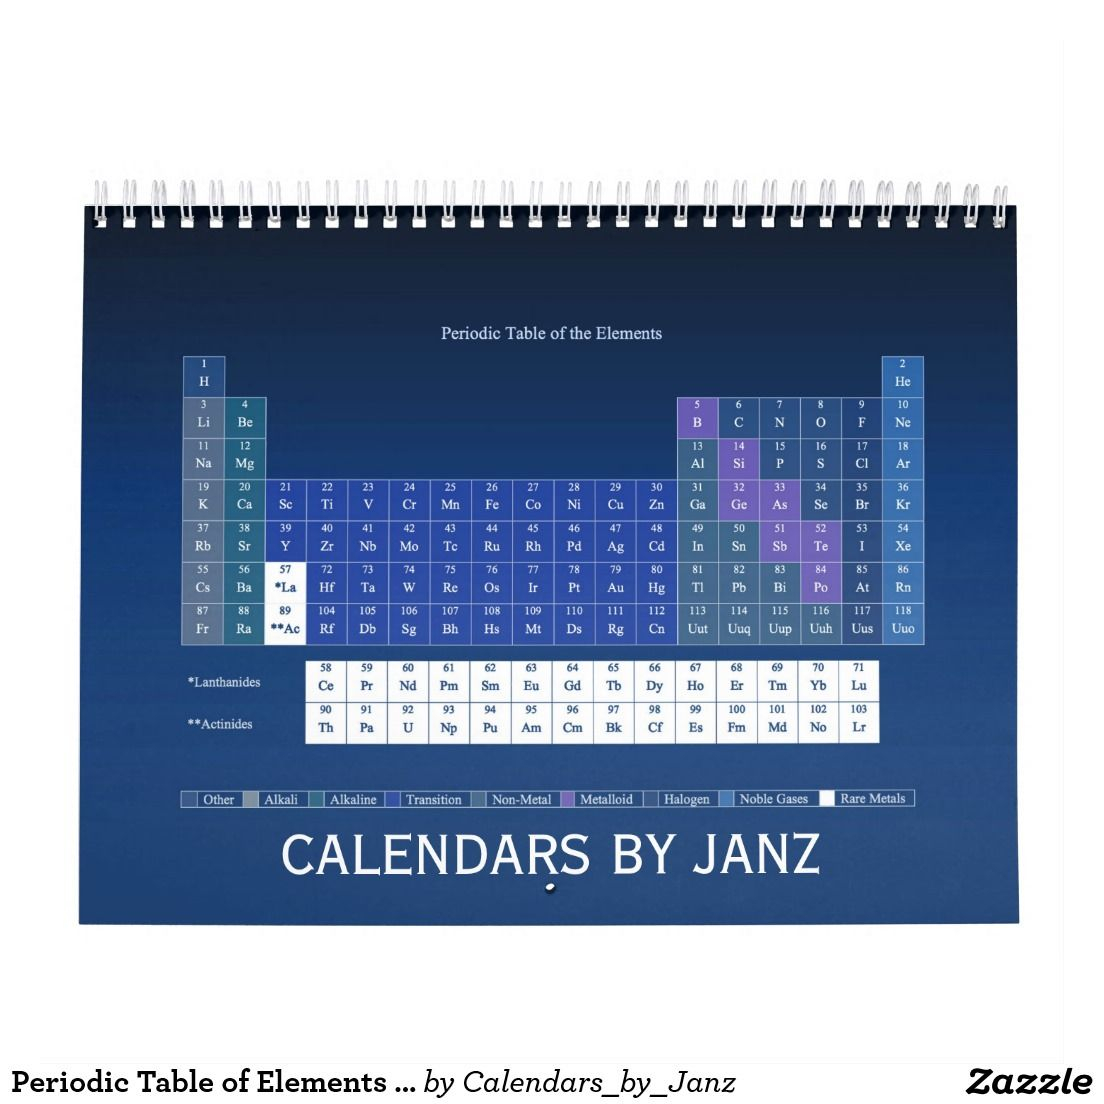 Periodic Table Of Elements Calendarjanz | Zazzle Within How Is The Periodic Table Like A Calender